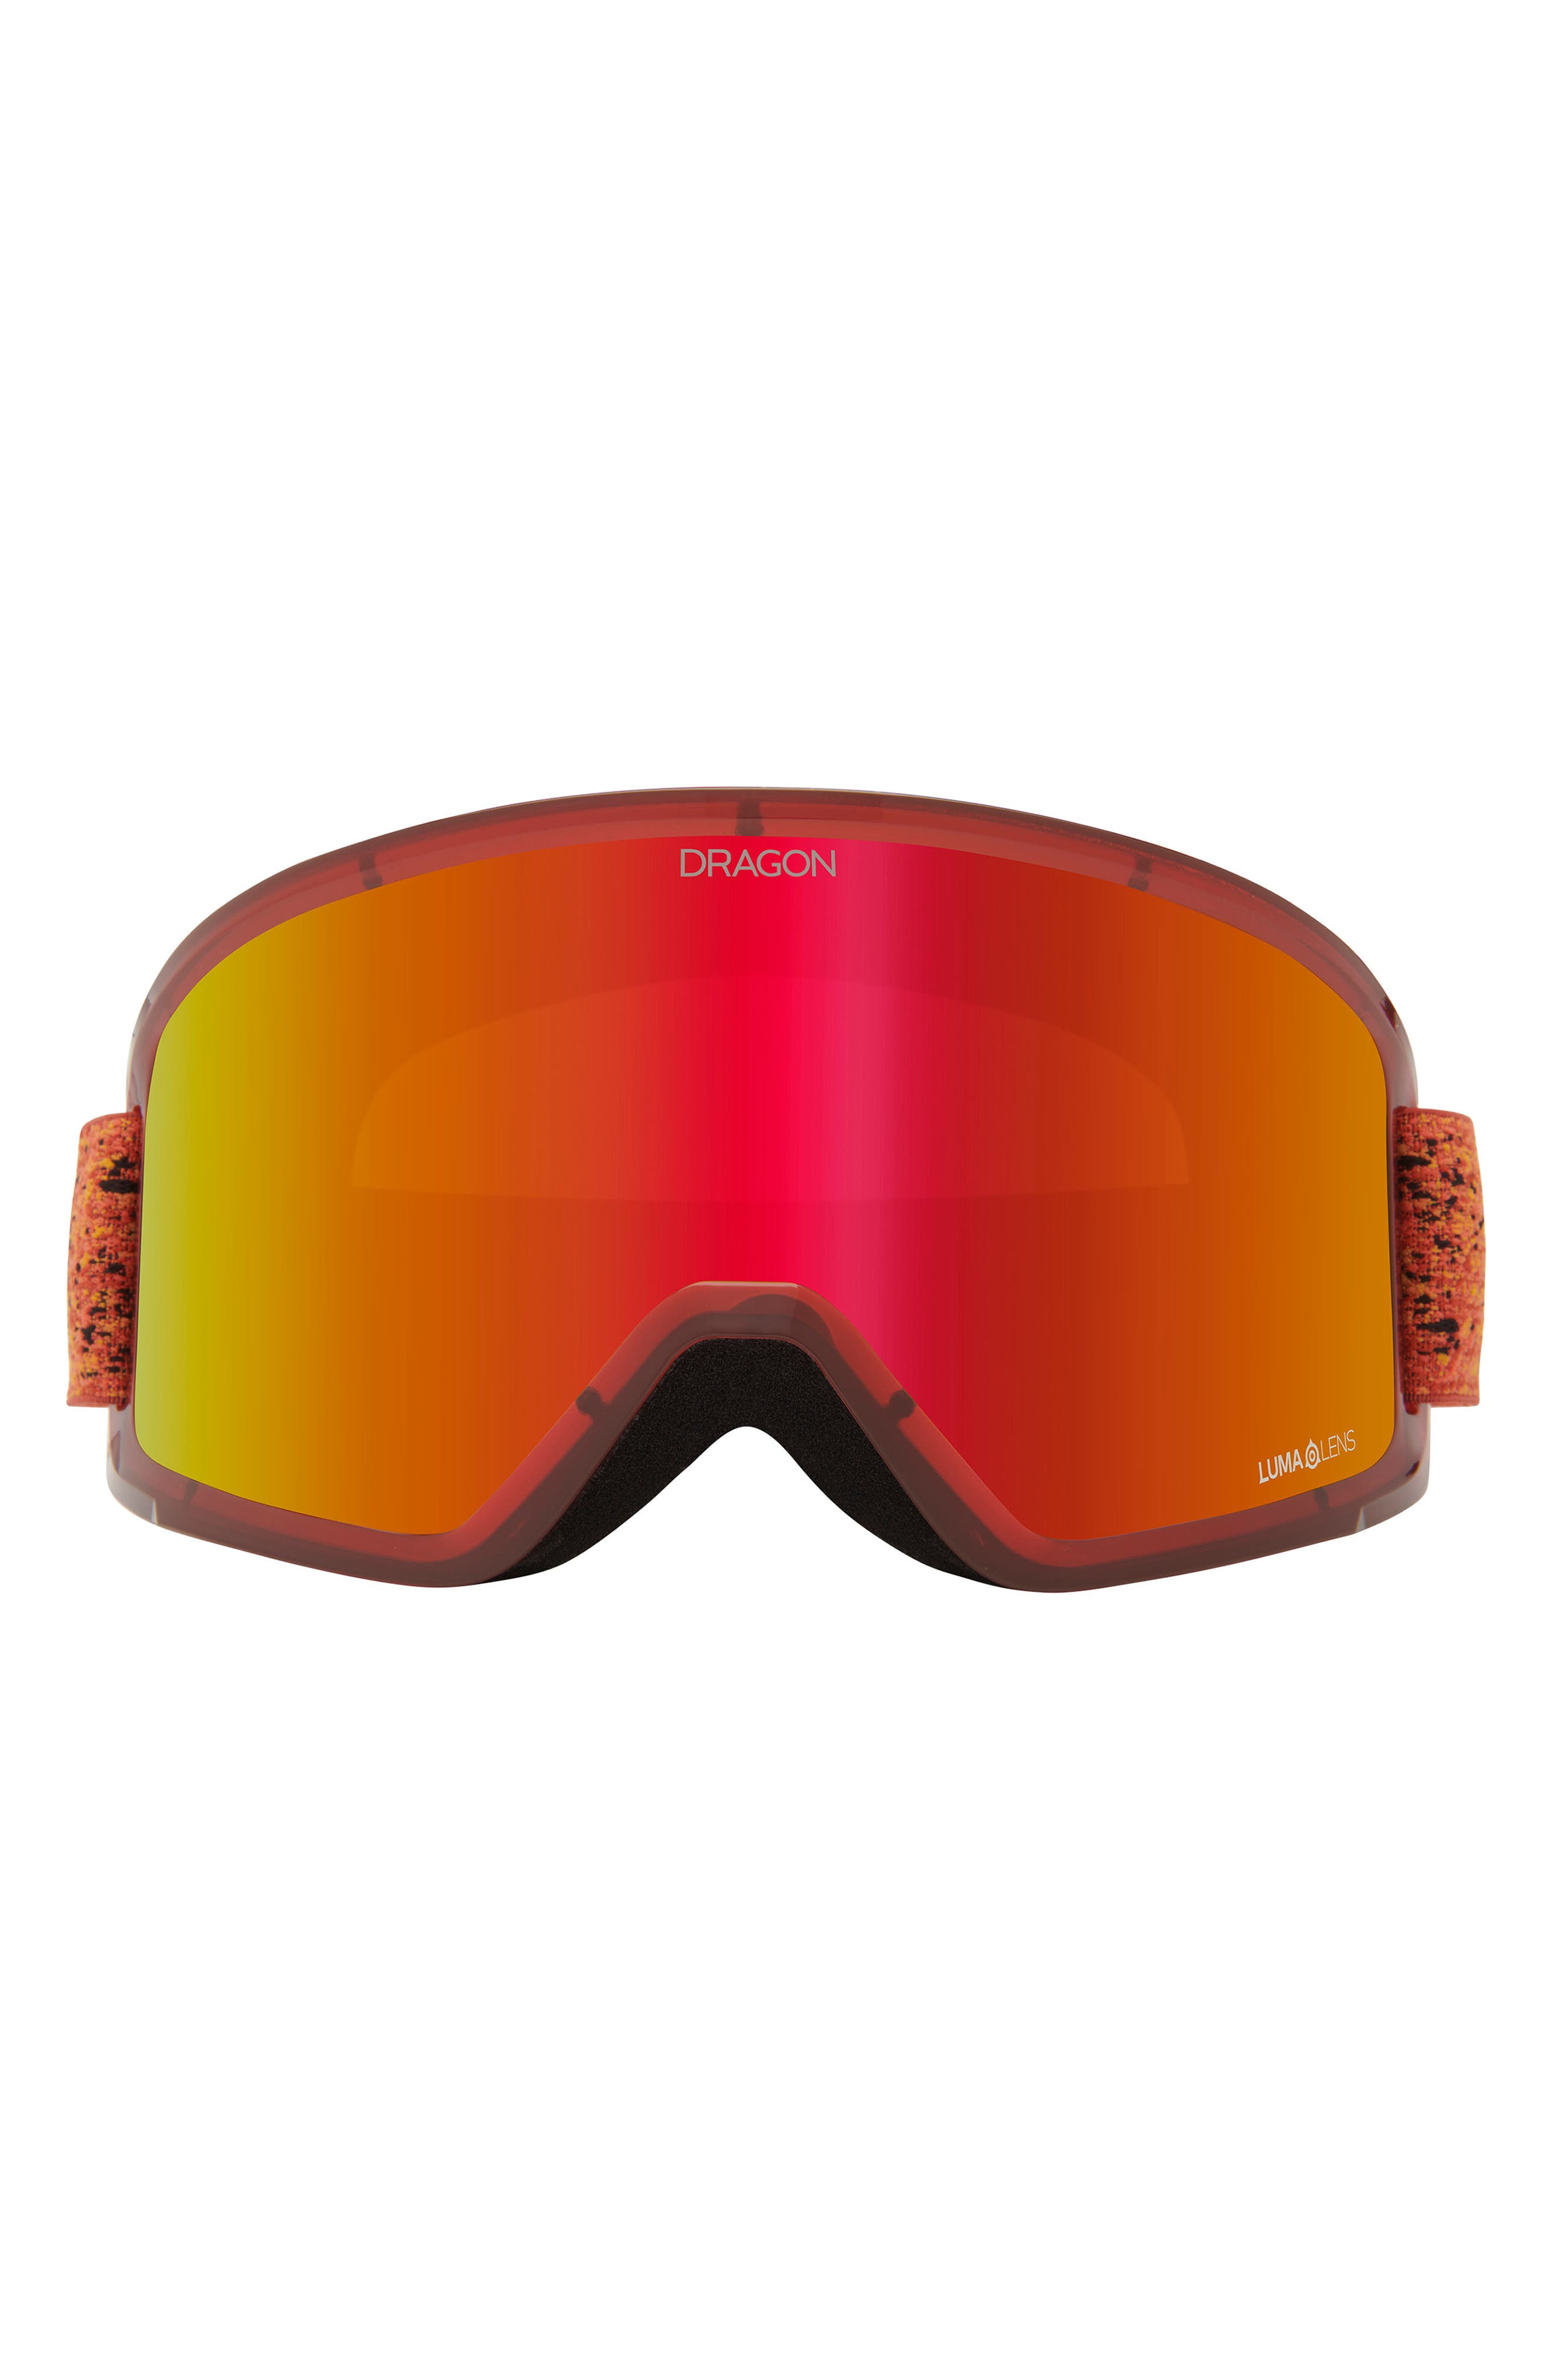 Dx3 Otg Snow Goggles With Ion Lenses